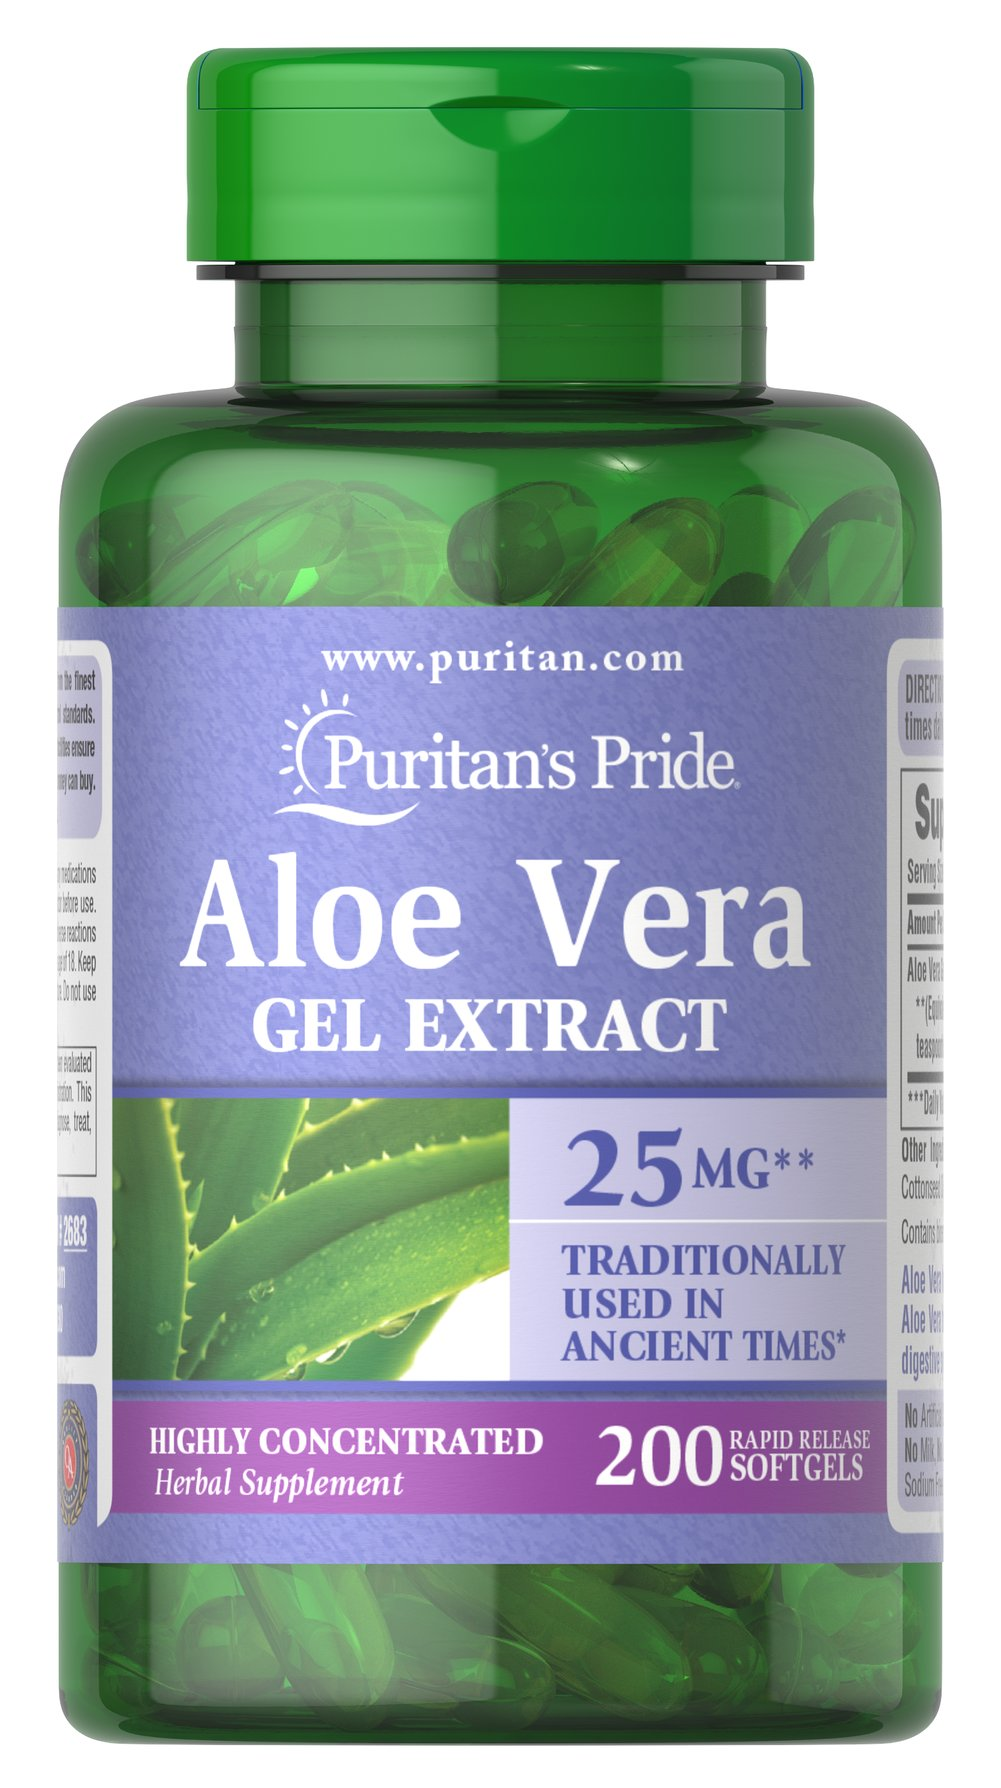 Aloe Vera Extract 25 mg <p>Serves as an aid for healthy digestion**</p><p>Plays a role in the well-being of the body**</p><p>Convenience of capsules, softgels and liquids is unsurpassed</p><p>Has been used and trusted for centuries. **</p><p>Aloe Vera contains a vast array of vitamins, minerals, amino acids, polysaccharides and phenolic compounds, and has been shown to support a healthy digestive system.**</p> 200 Softgels 25 mg $18.49